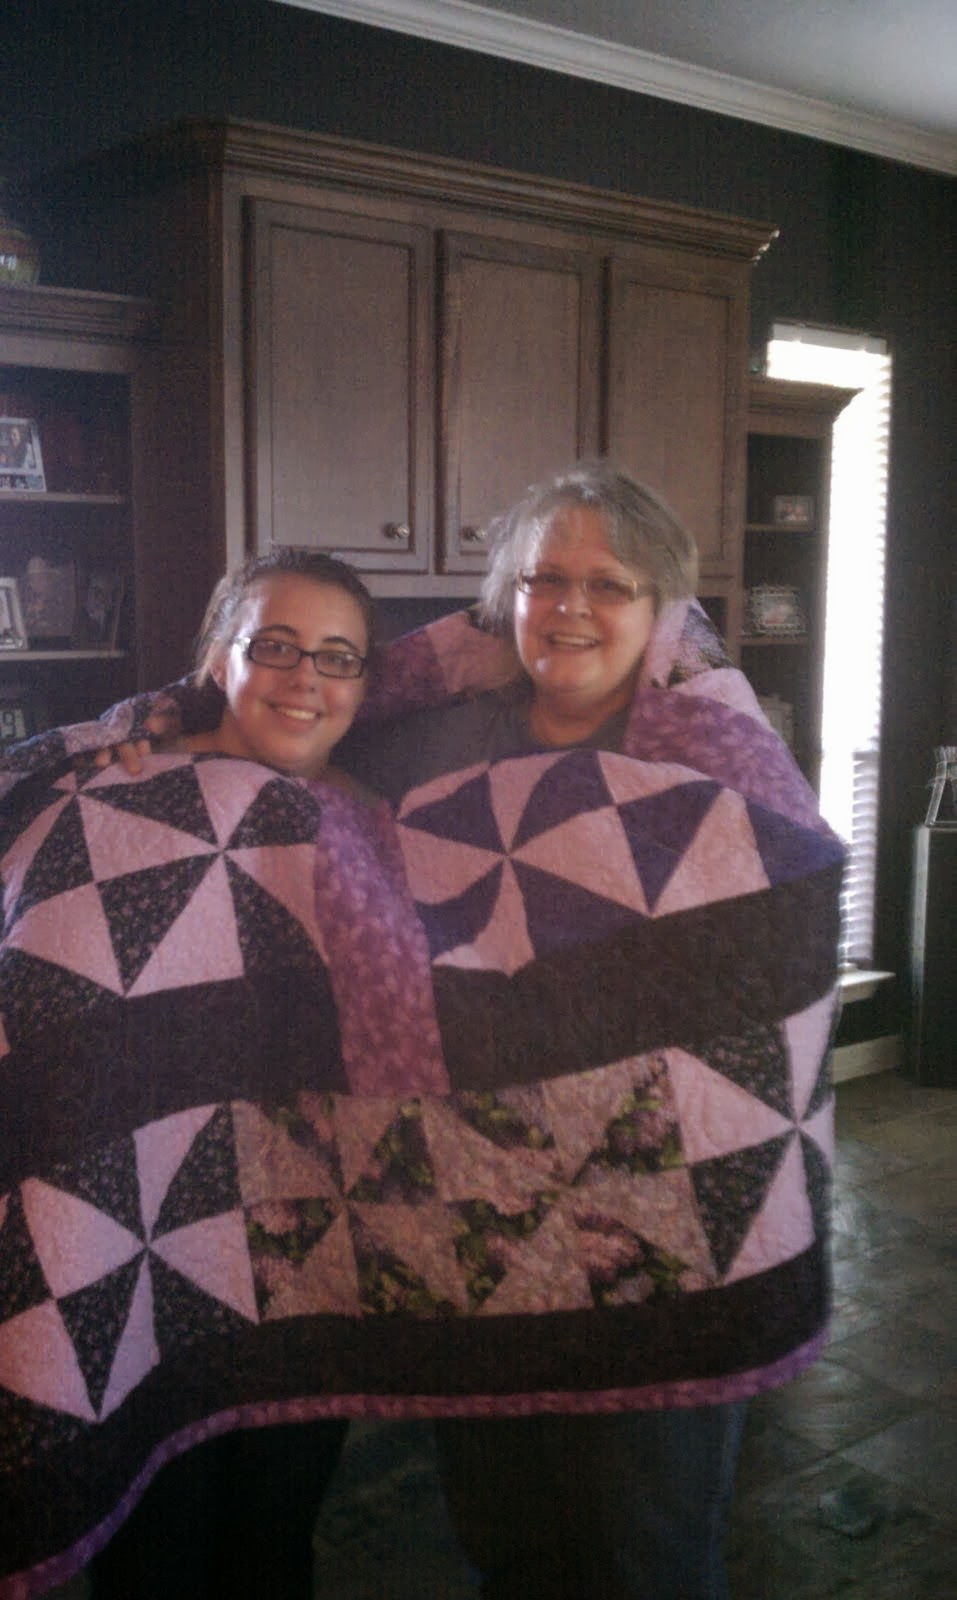 Quilt I made for Rans